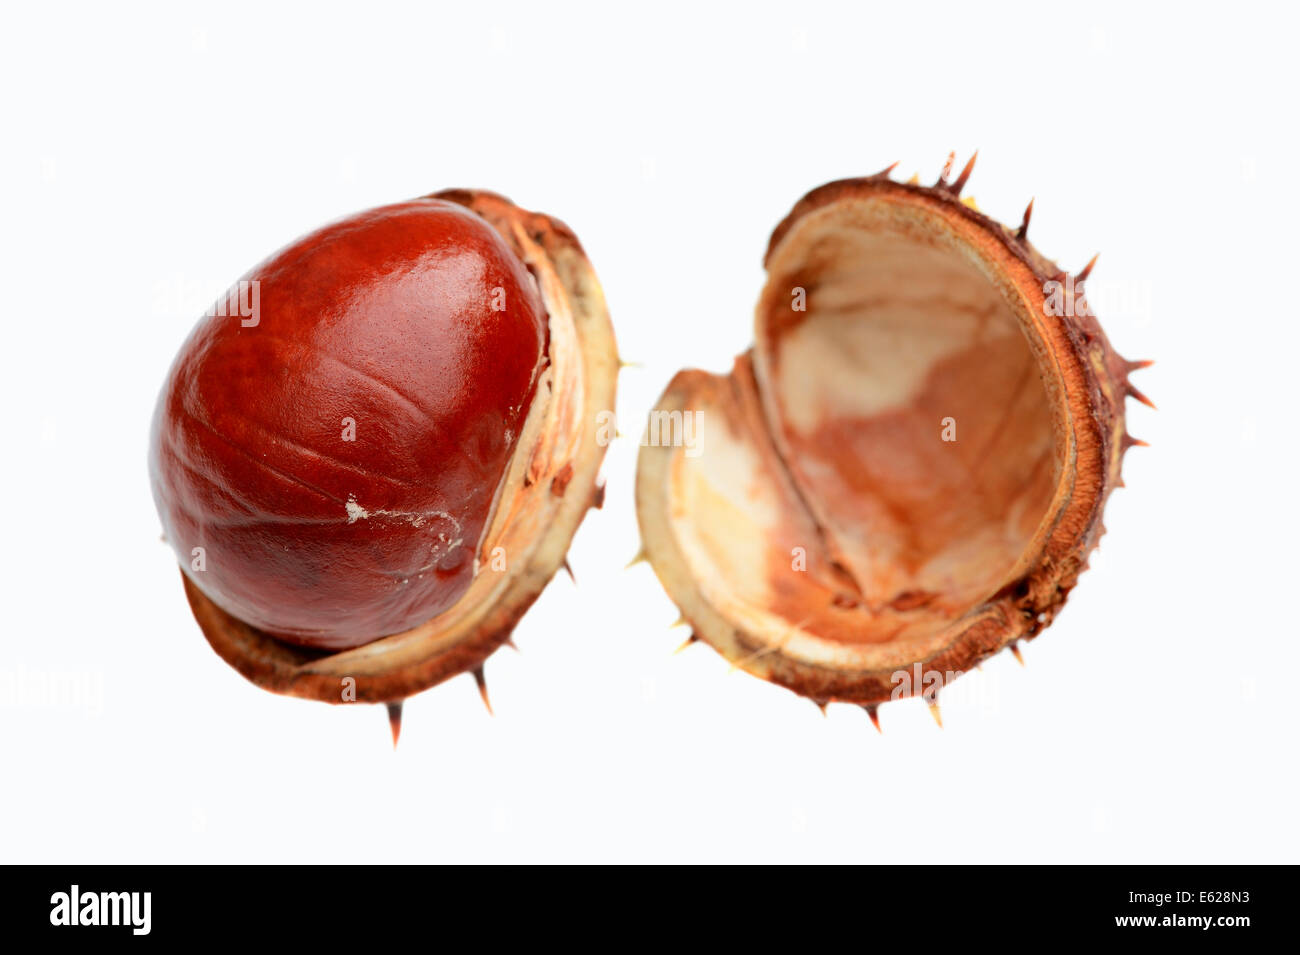 Horse Chestnut or Conker Tree (Aesculus hippocastanum), fruit - Stock Image